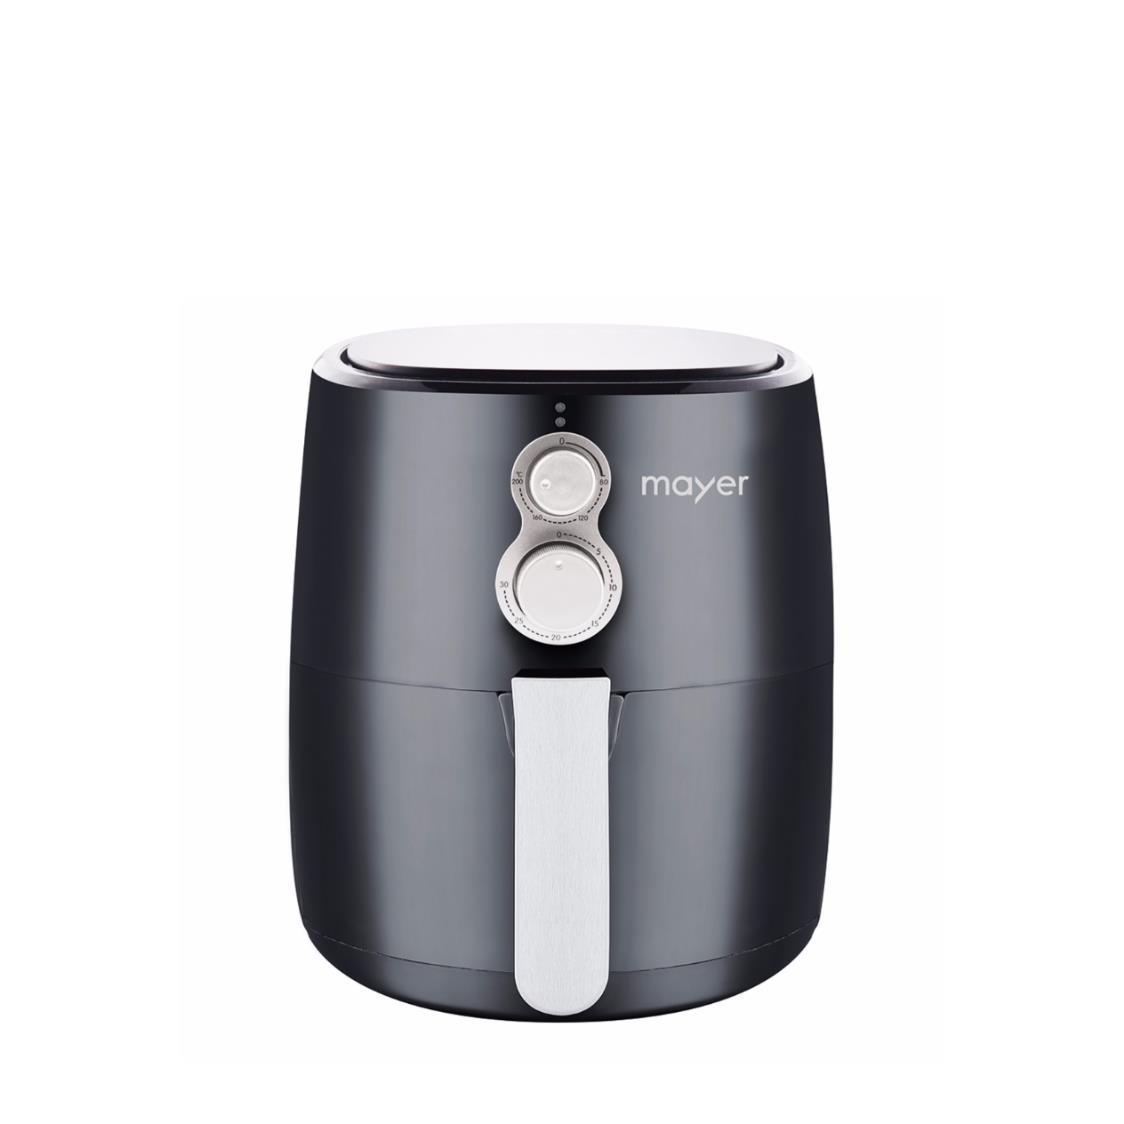 MAYER Air Fryer MMAF40 4L